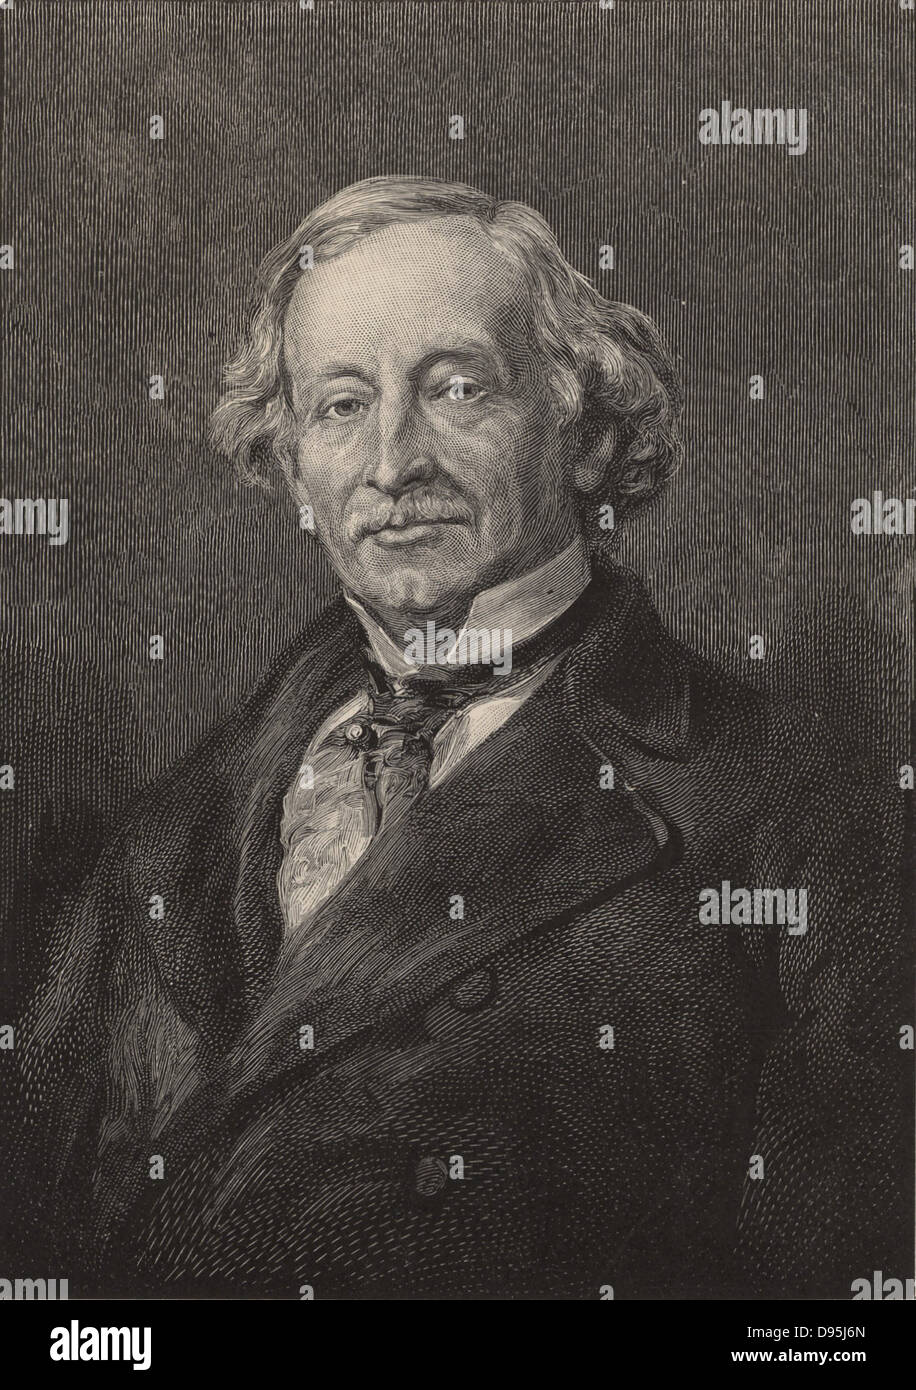 Charles Upham Shepard (1804-1886), American mineralogist and specialist in meteorites, born in Little Compton, Rhode - Stock Image